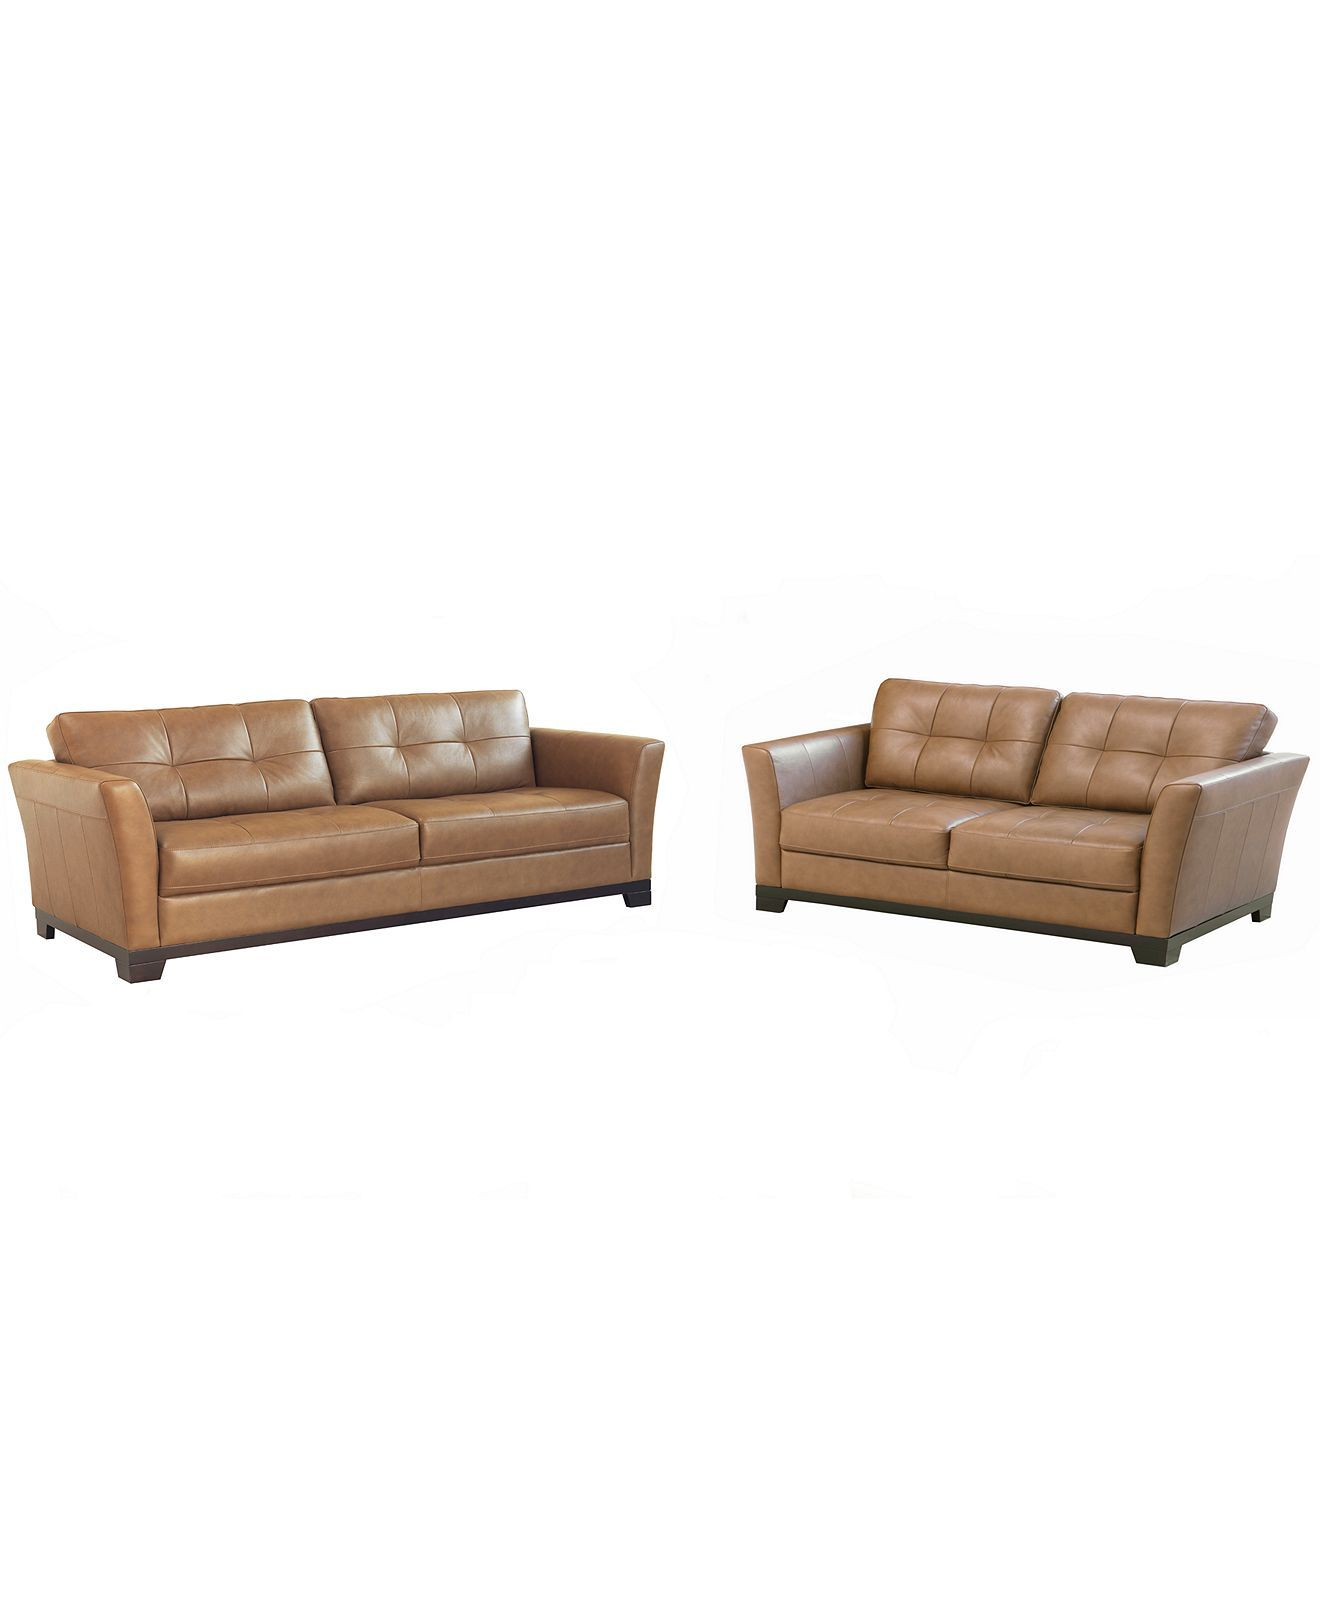 martino leather sofa seagrass macy 39s living room furniture 2 piece set